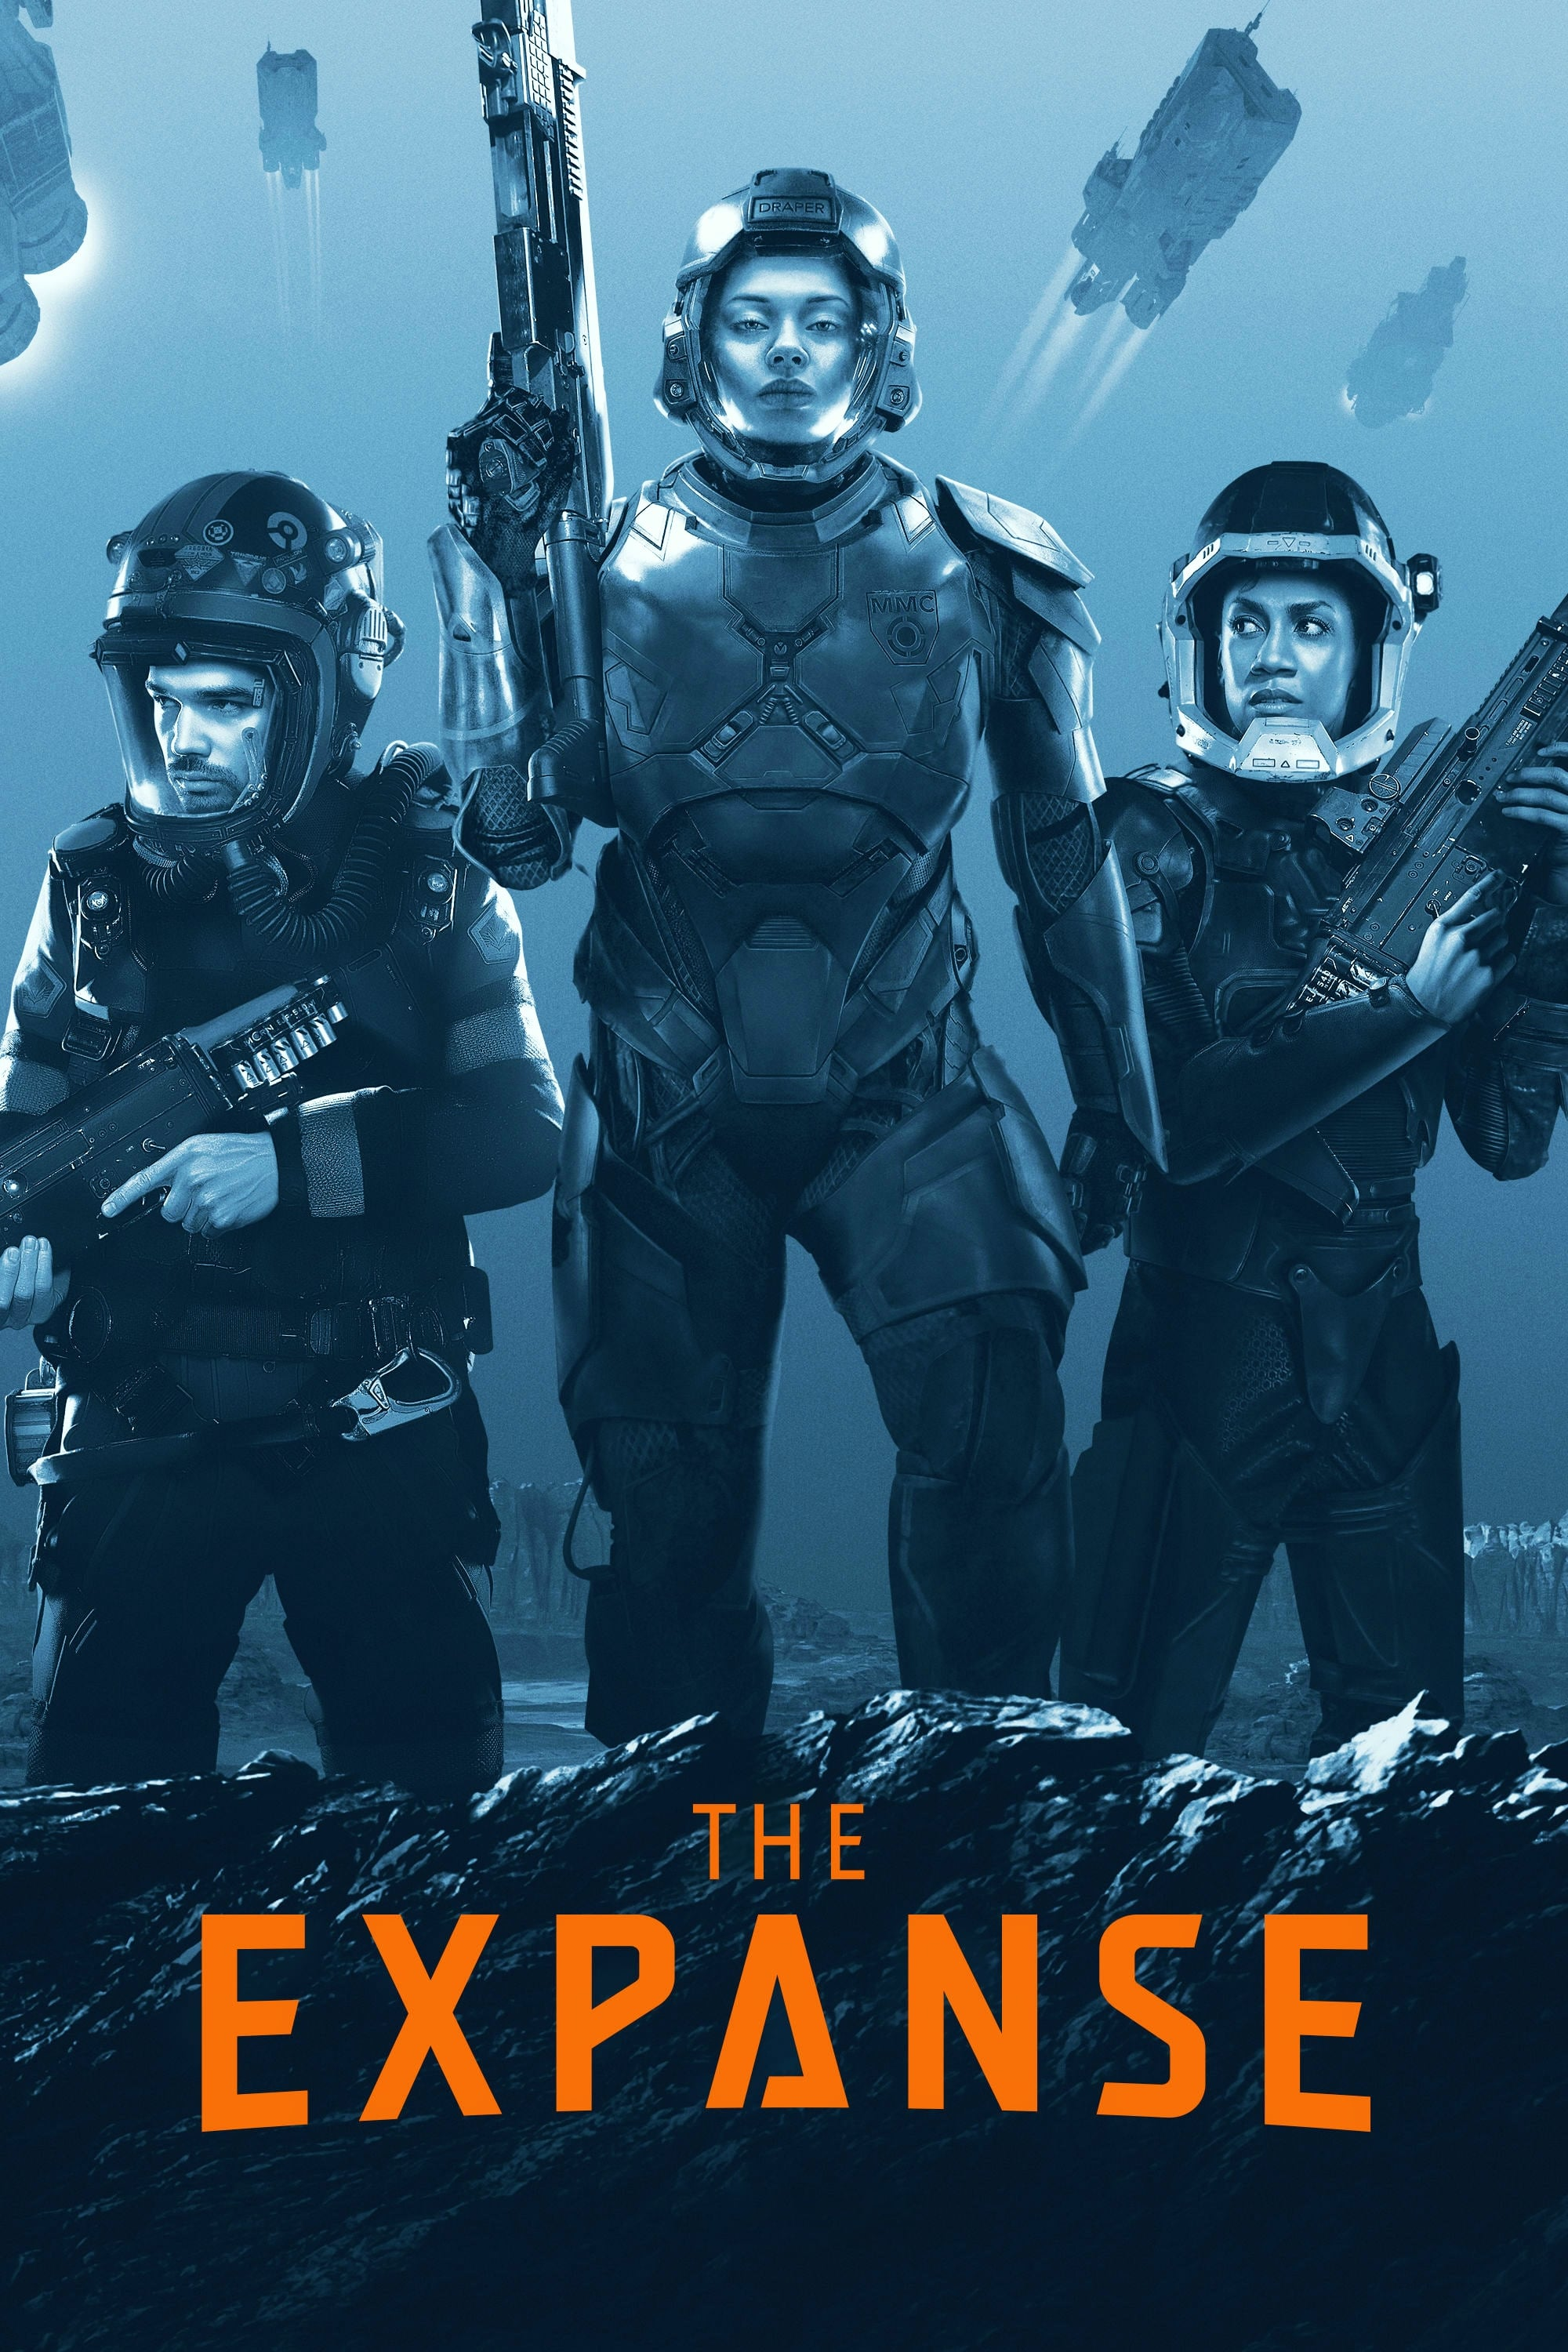 image for The Expanse